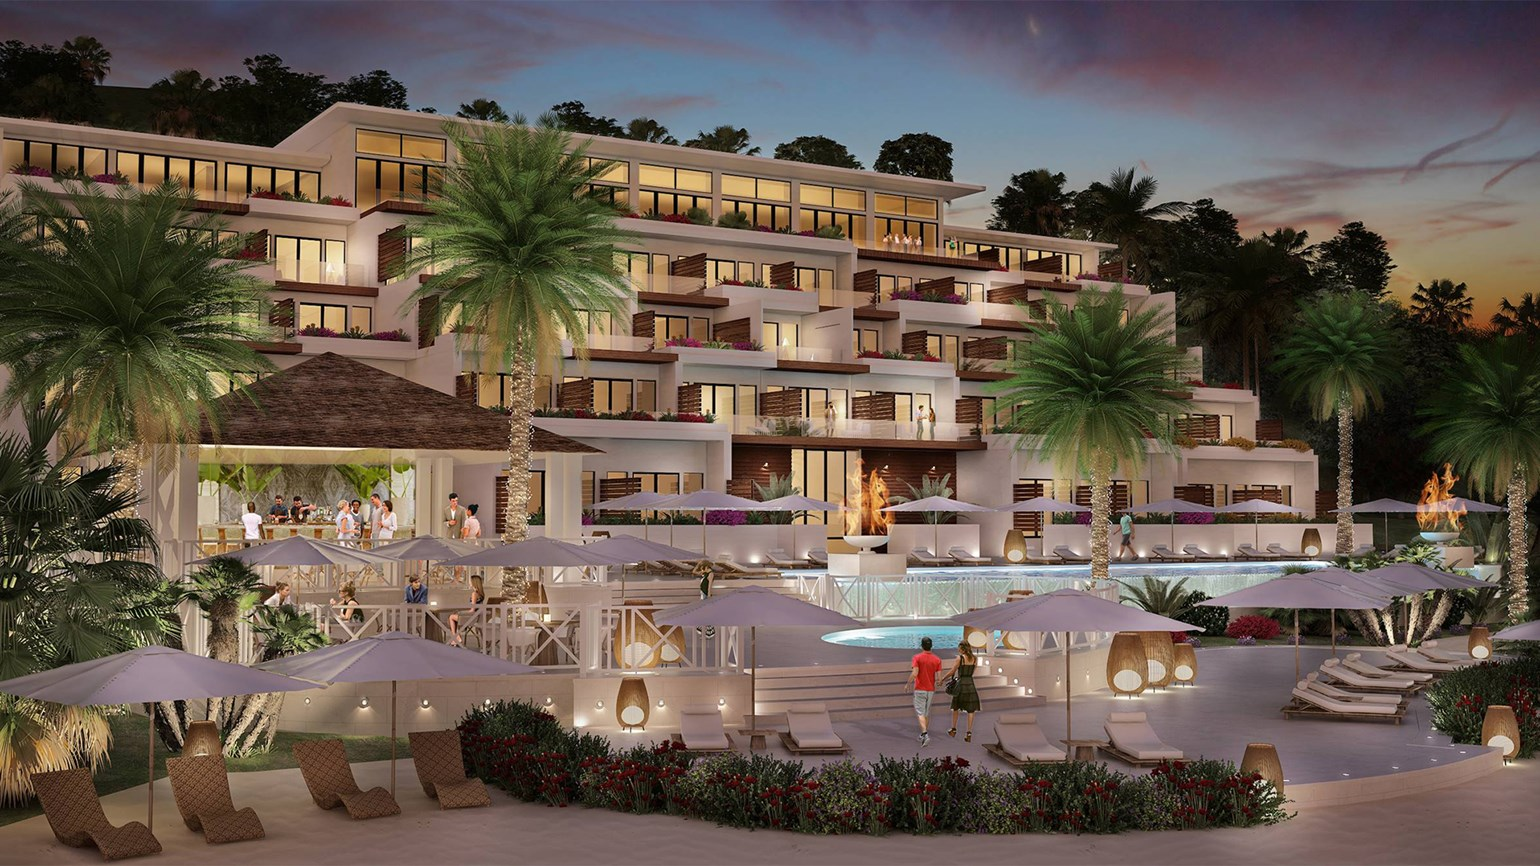 Kimpton to open second Caribbean resort in 2019